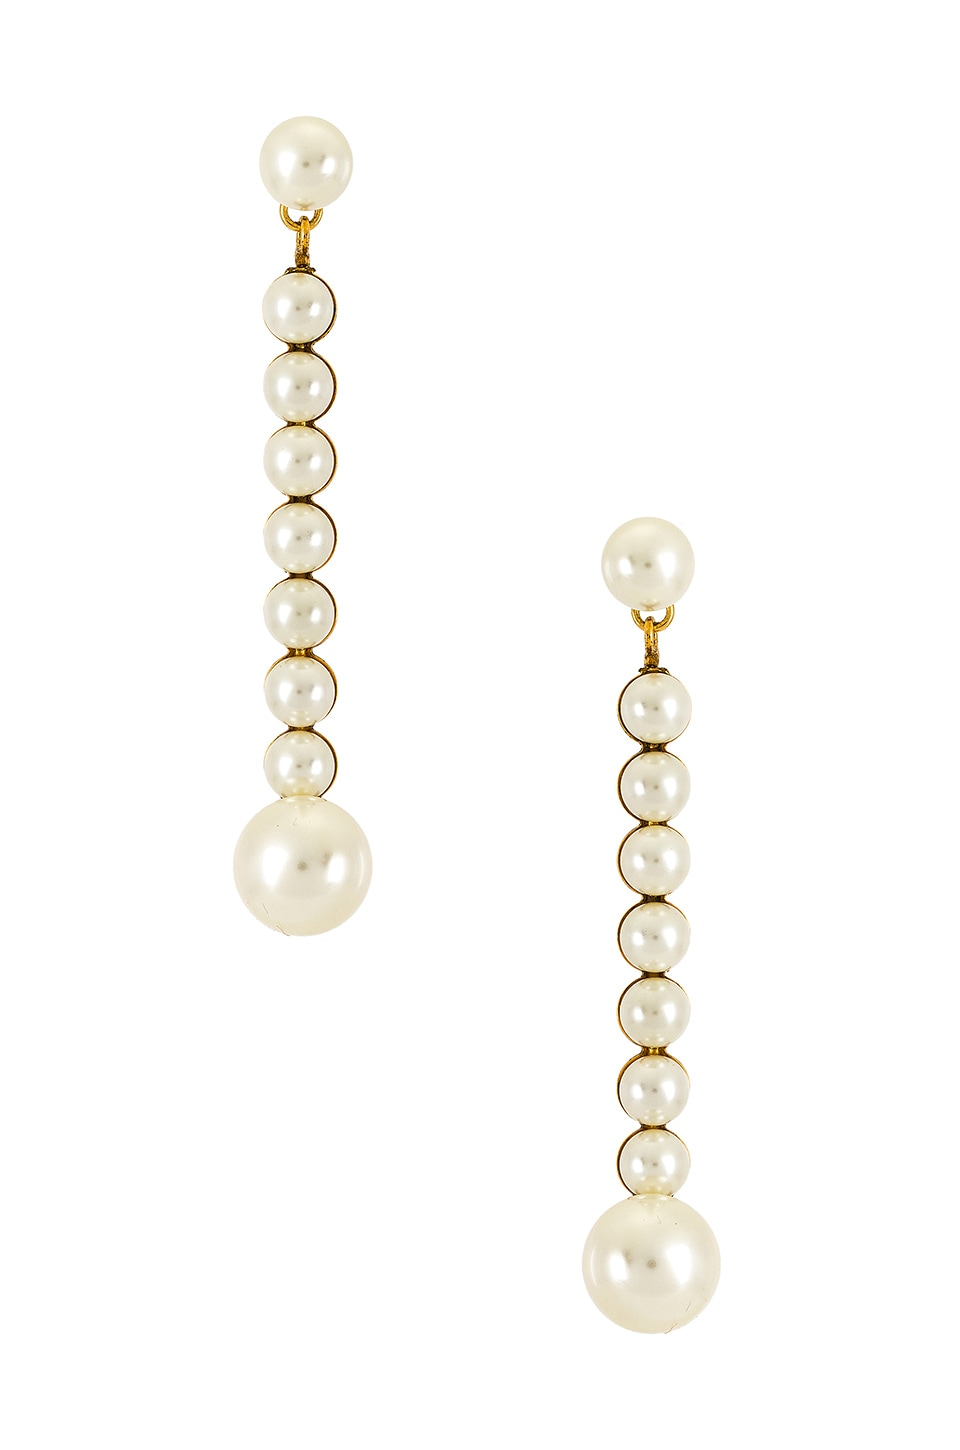 Jennifer Behr Isadore Earring in Gold & Pearl